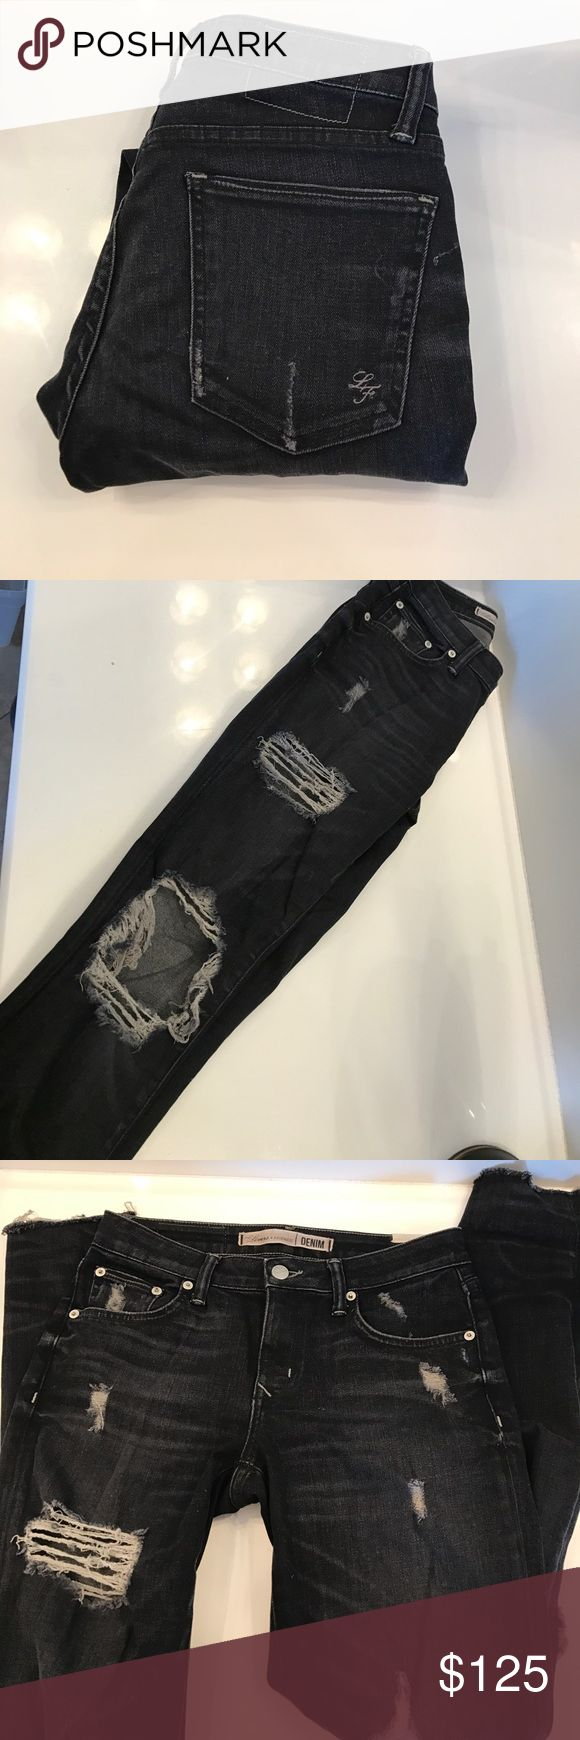 Lovers and friends ripped skinny jeans Worn twice. Excellent condition. Super distressed. Raw hem Lovers + Friends Jeans Skinny